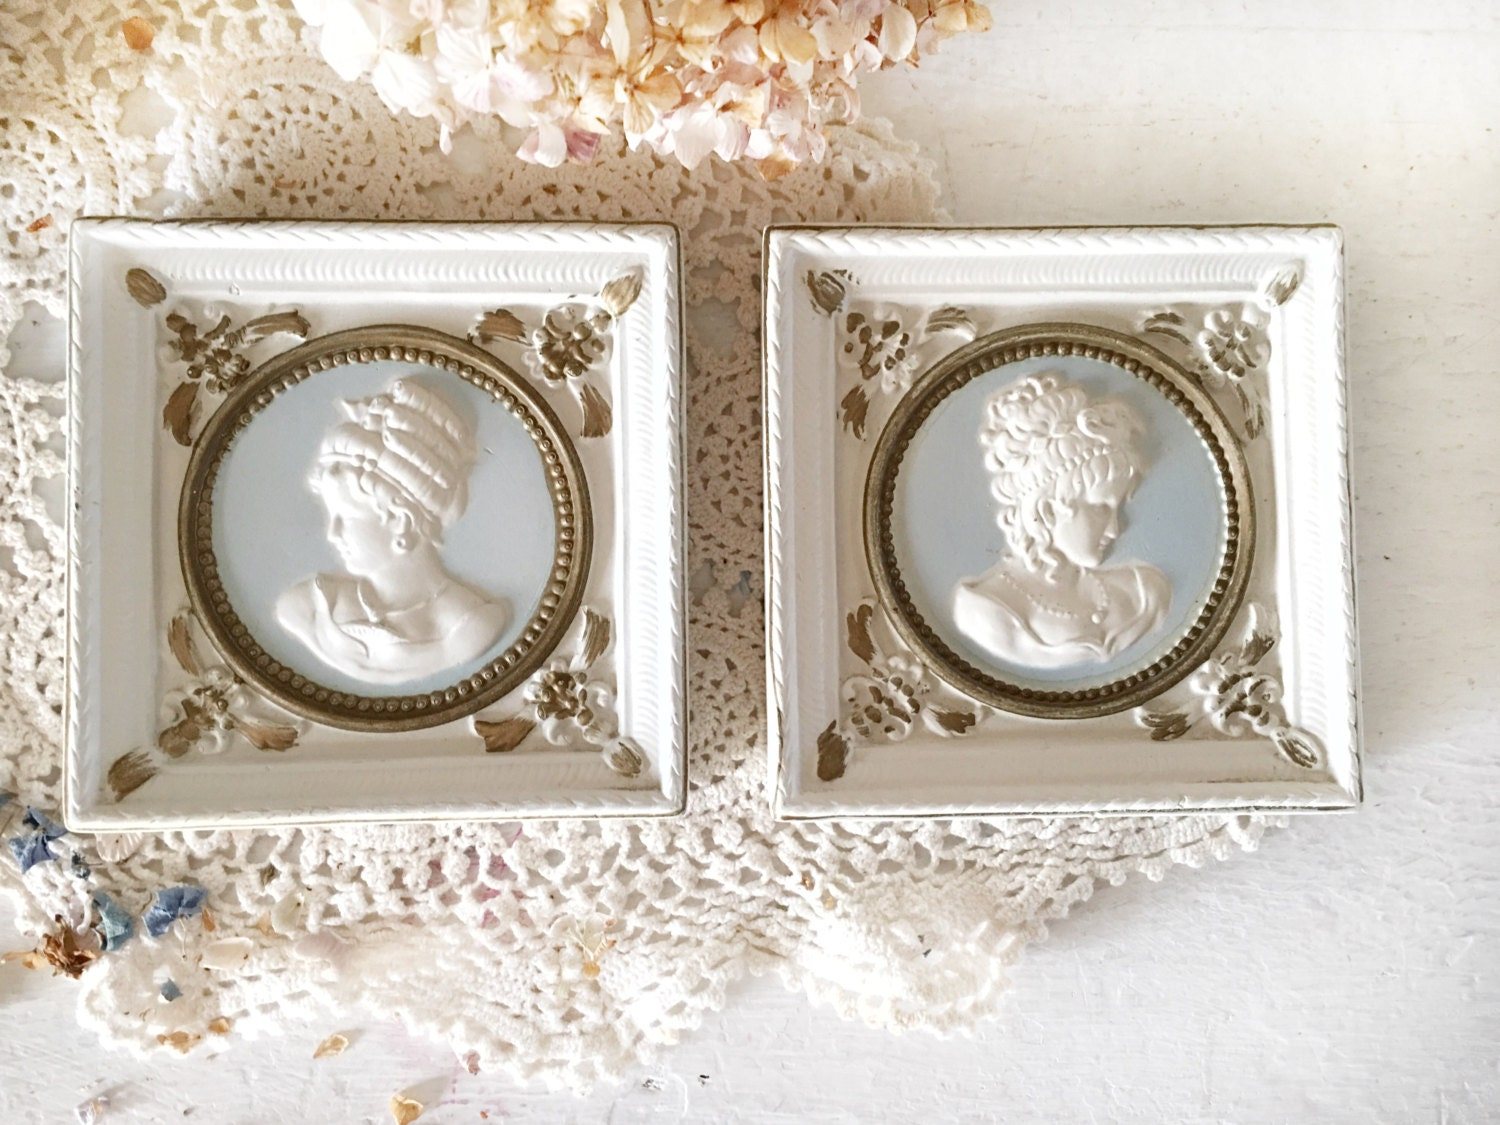 victorian wall plaque cameo silhoettesvintage porcelain cameo wall hangingsvictorian bedroom wall decorelegant cameo wall decor